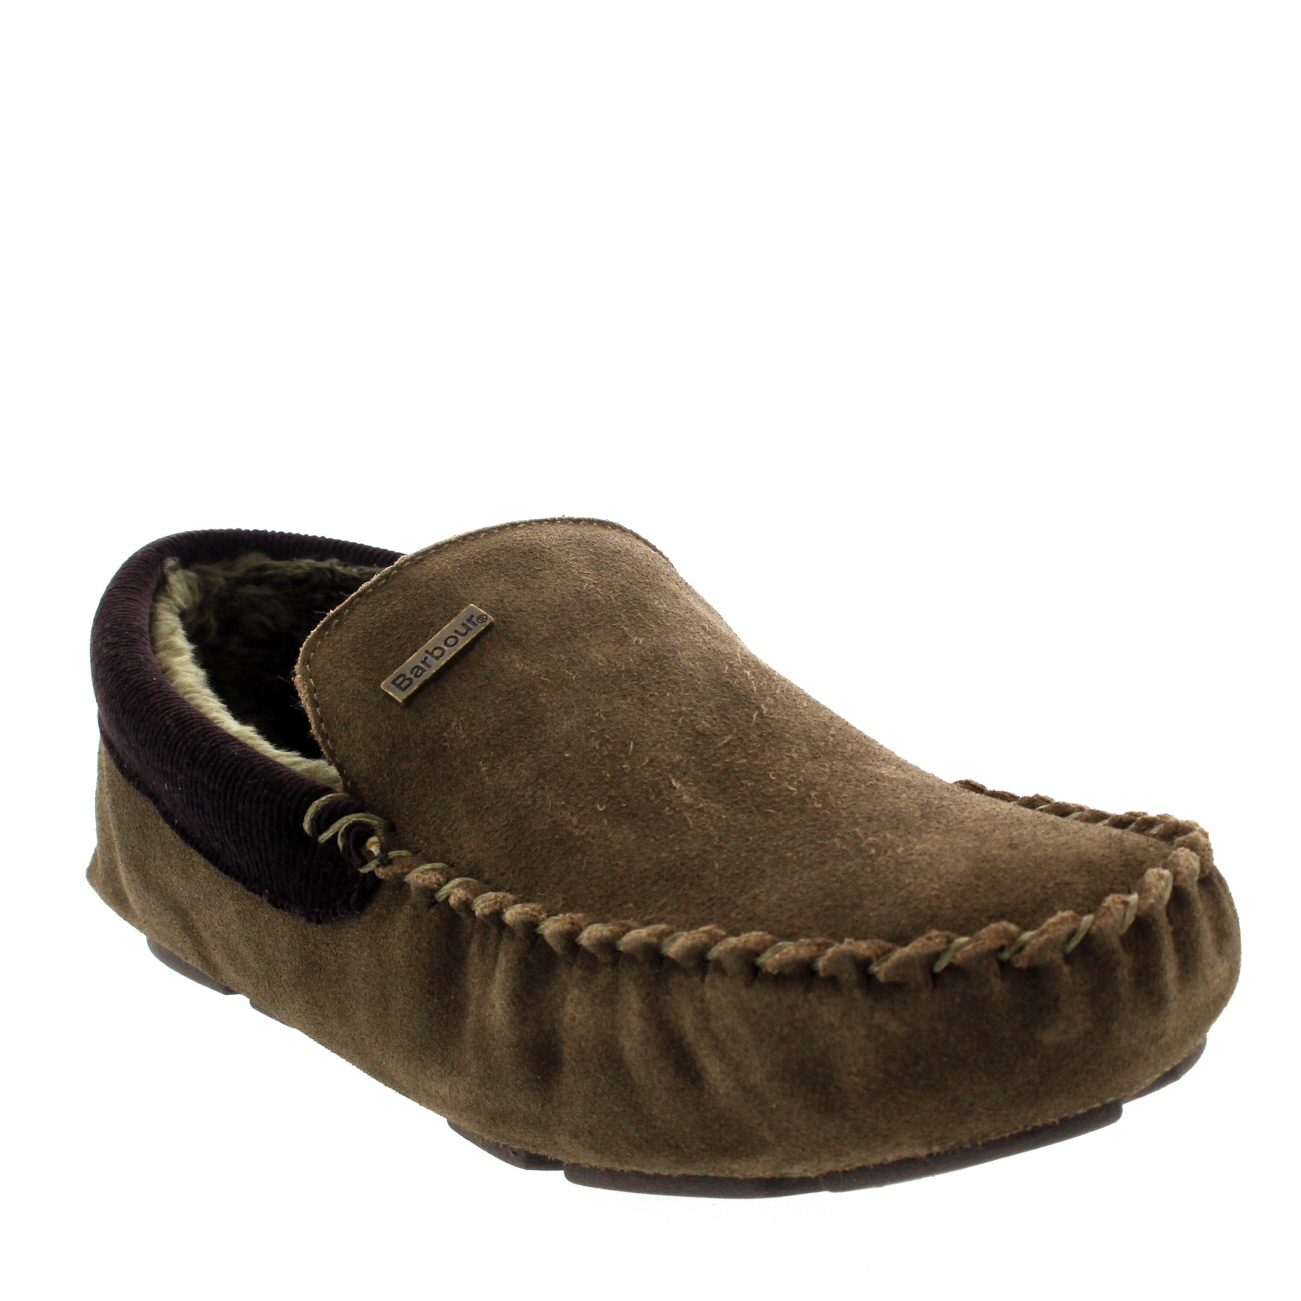 Barbour Monty Moccasin Fur Lined